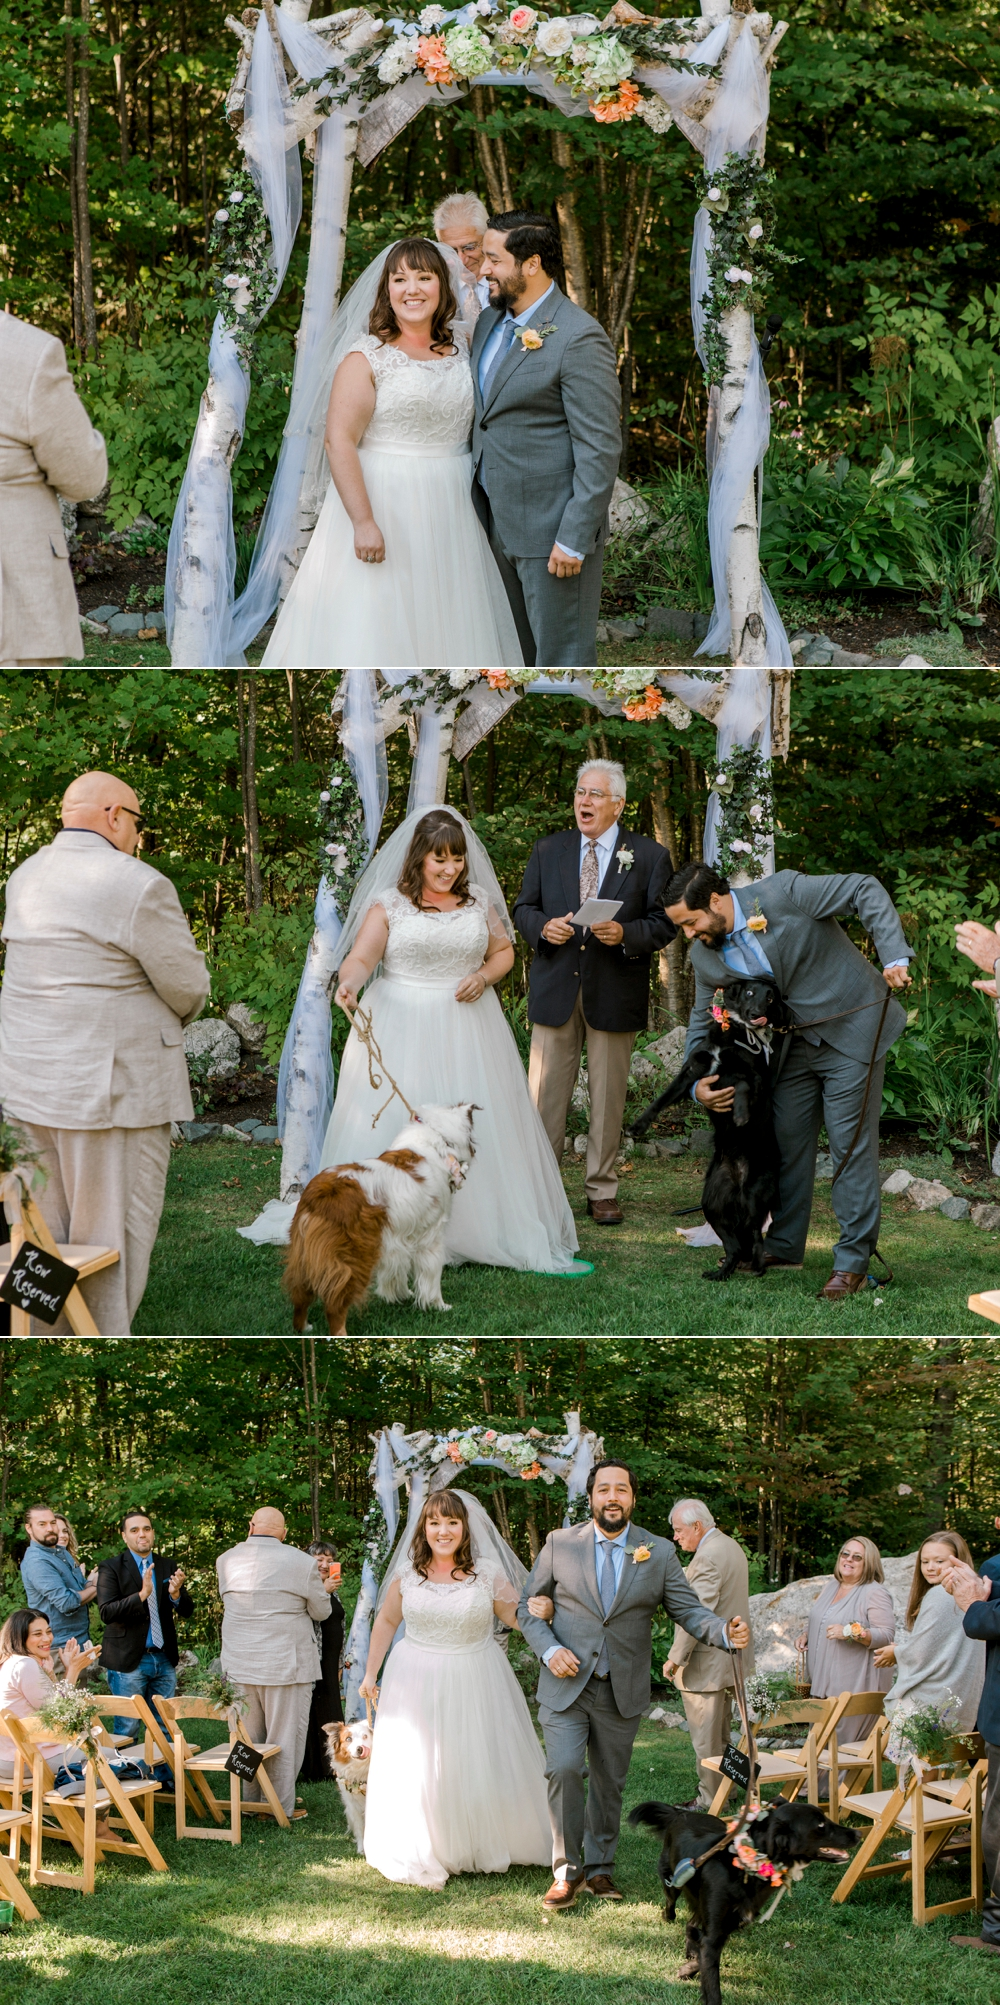 SomerbyJonesPhotography__NotchHouseWedding_NotchHouse_NotchHouseVermont_0012.jpg